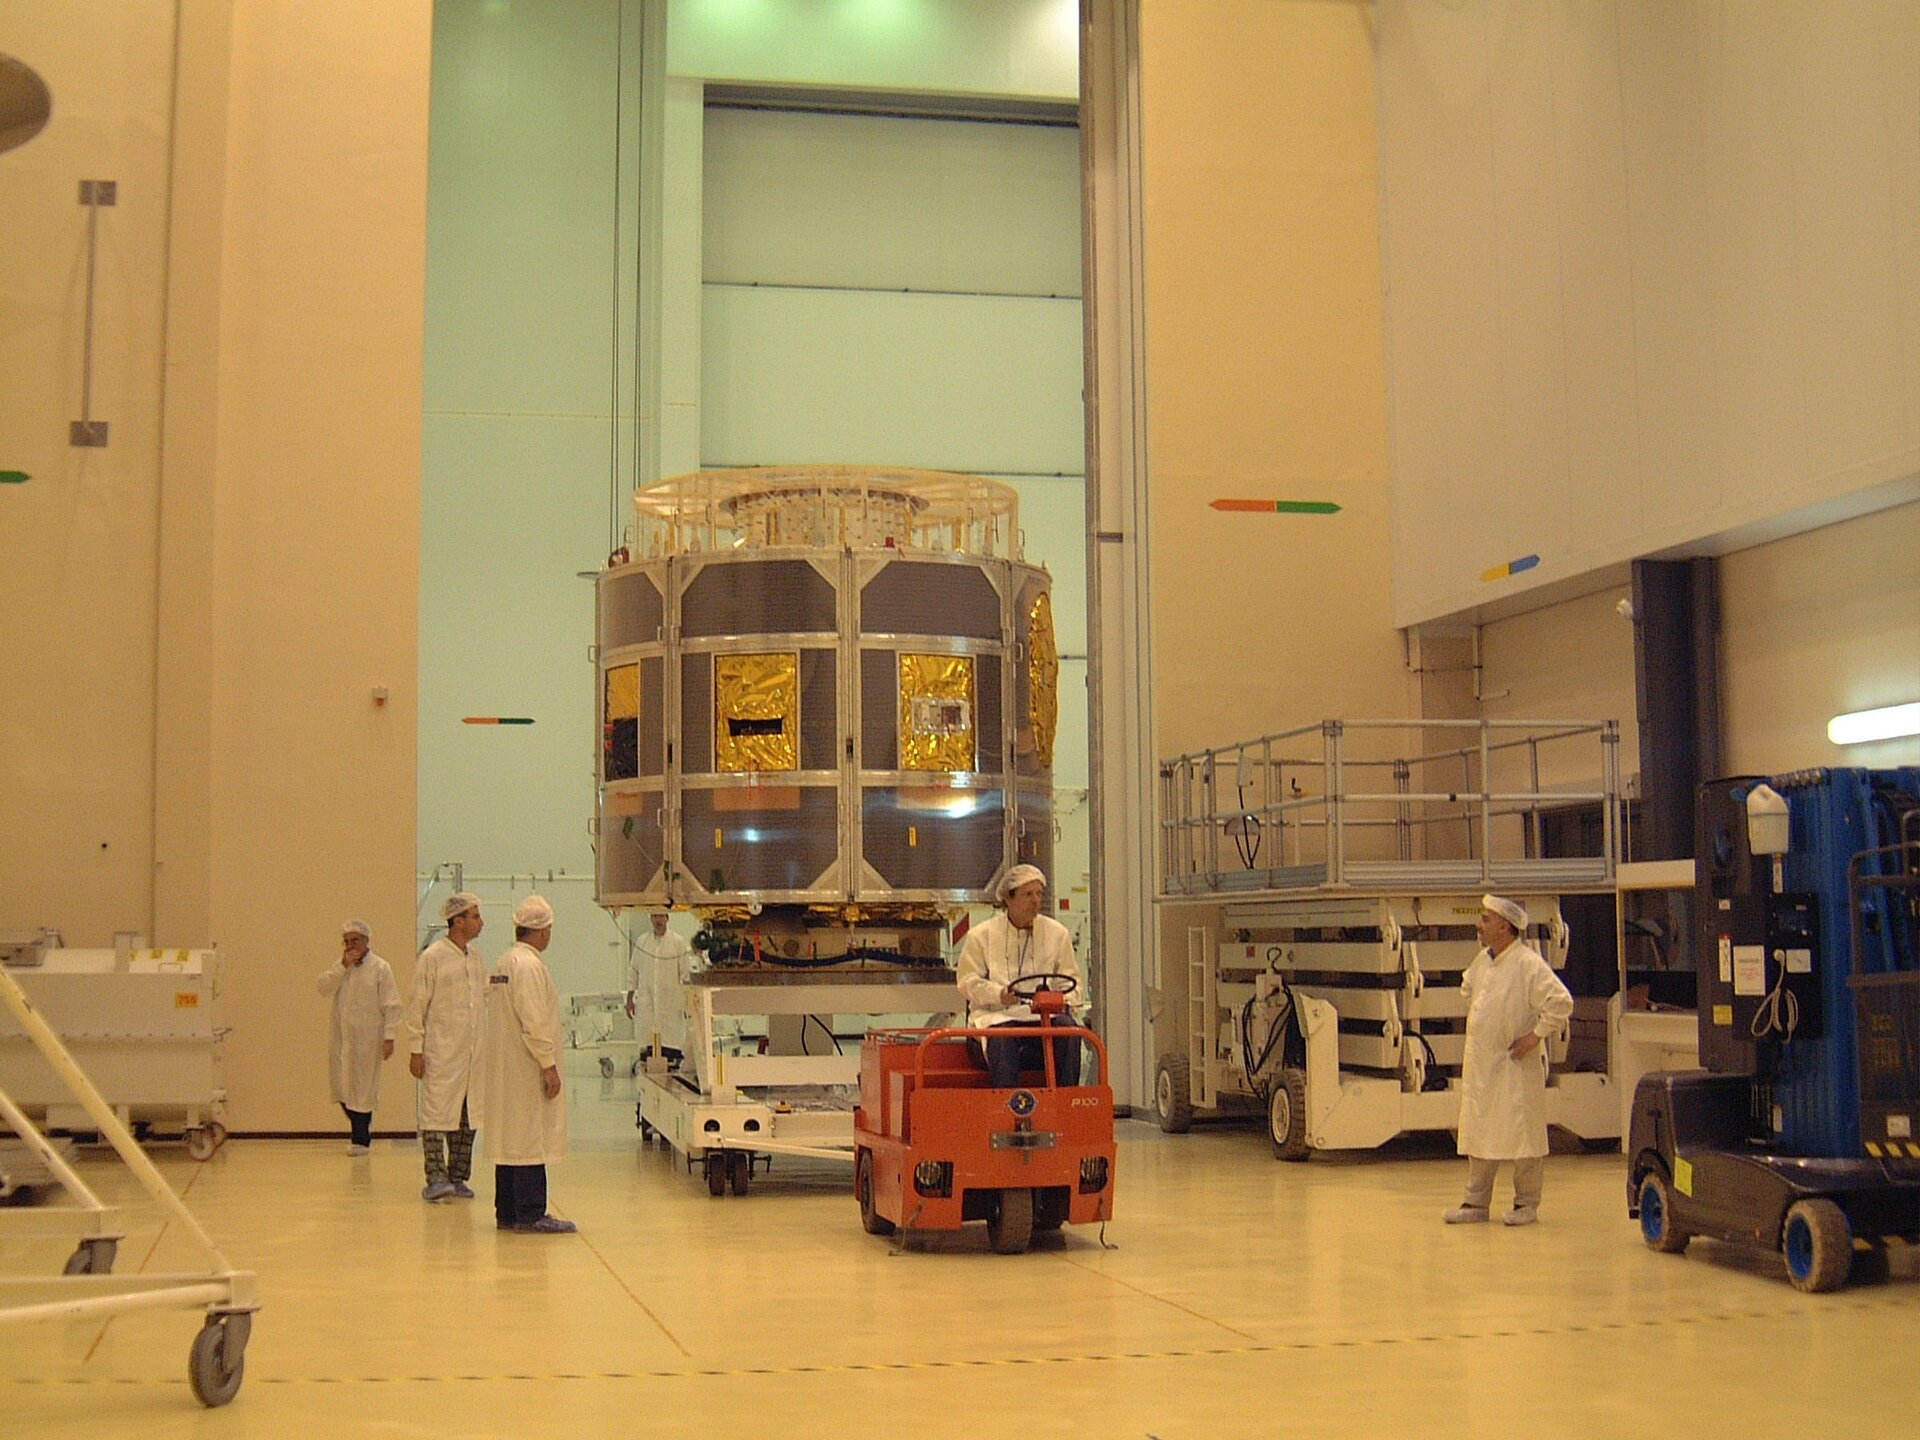 The first of three satellites of the Meteosat Second Generation (MSG) family has arrived at the Guiana Space Center